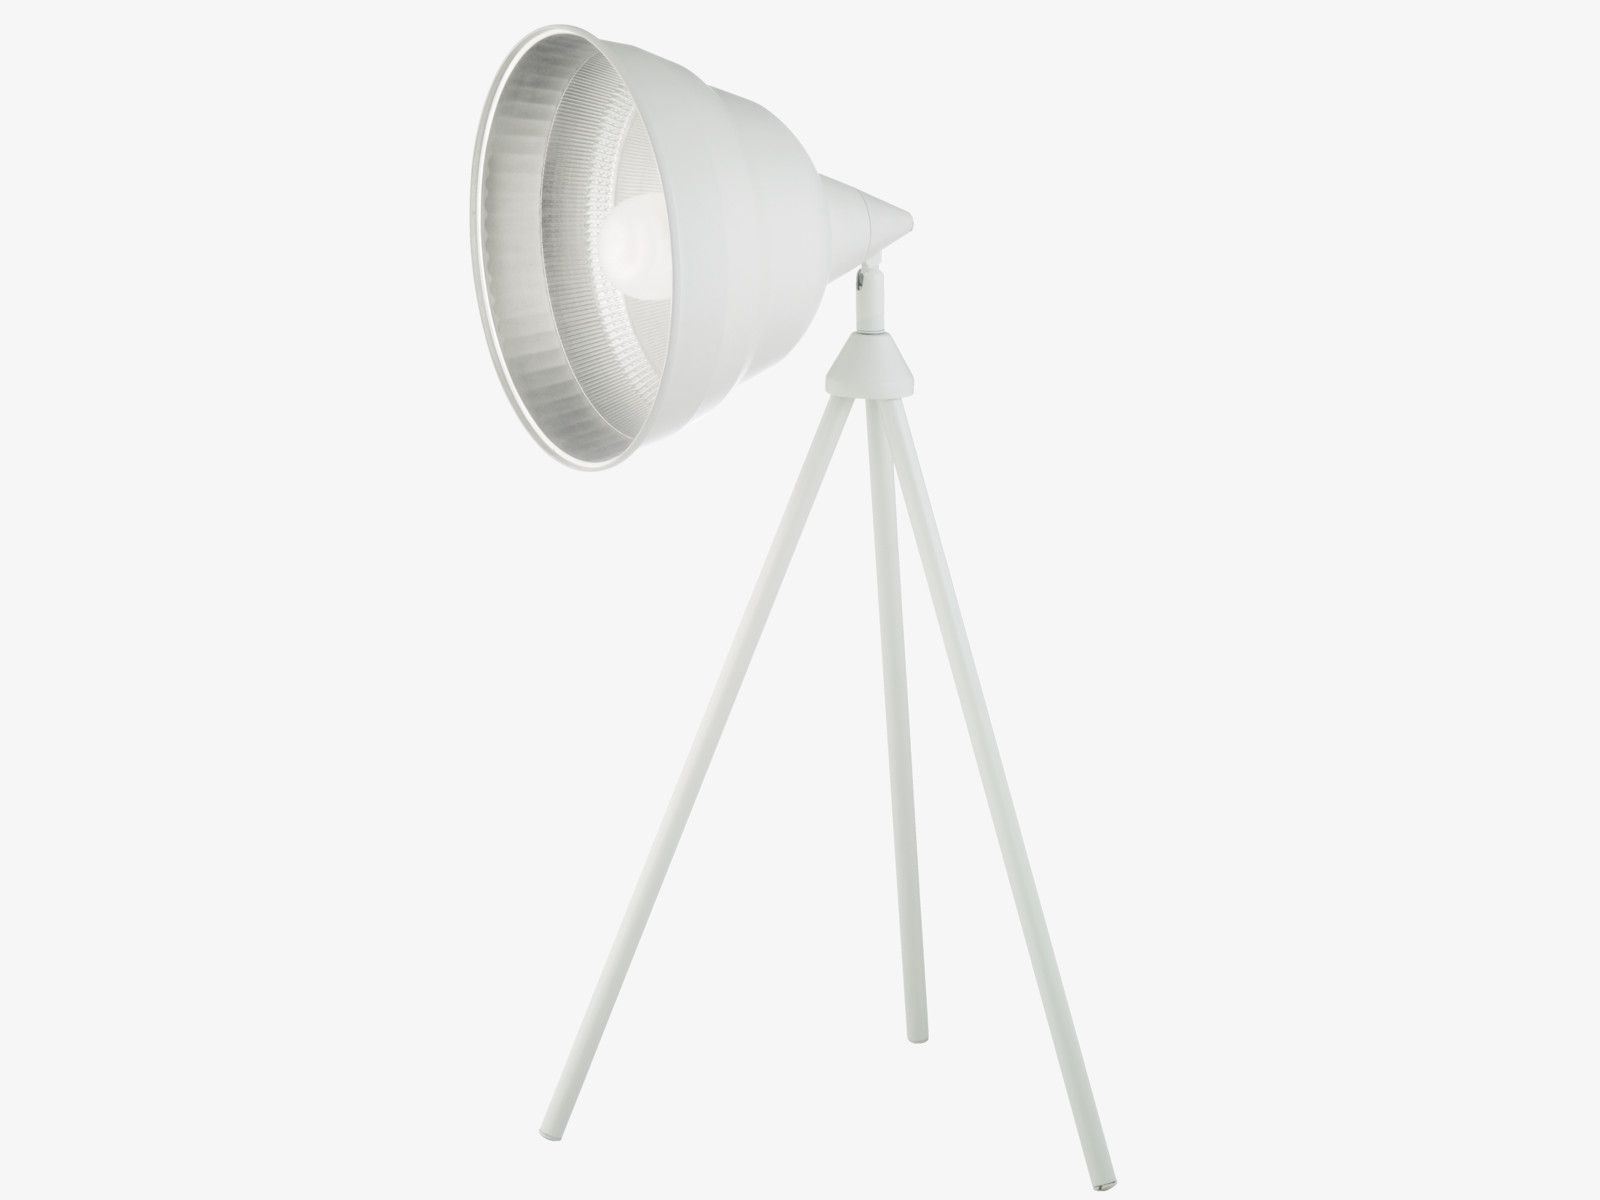 PHOTOGRAPHIC WHITES Metal White metal tripod desk lamp base ...